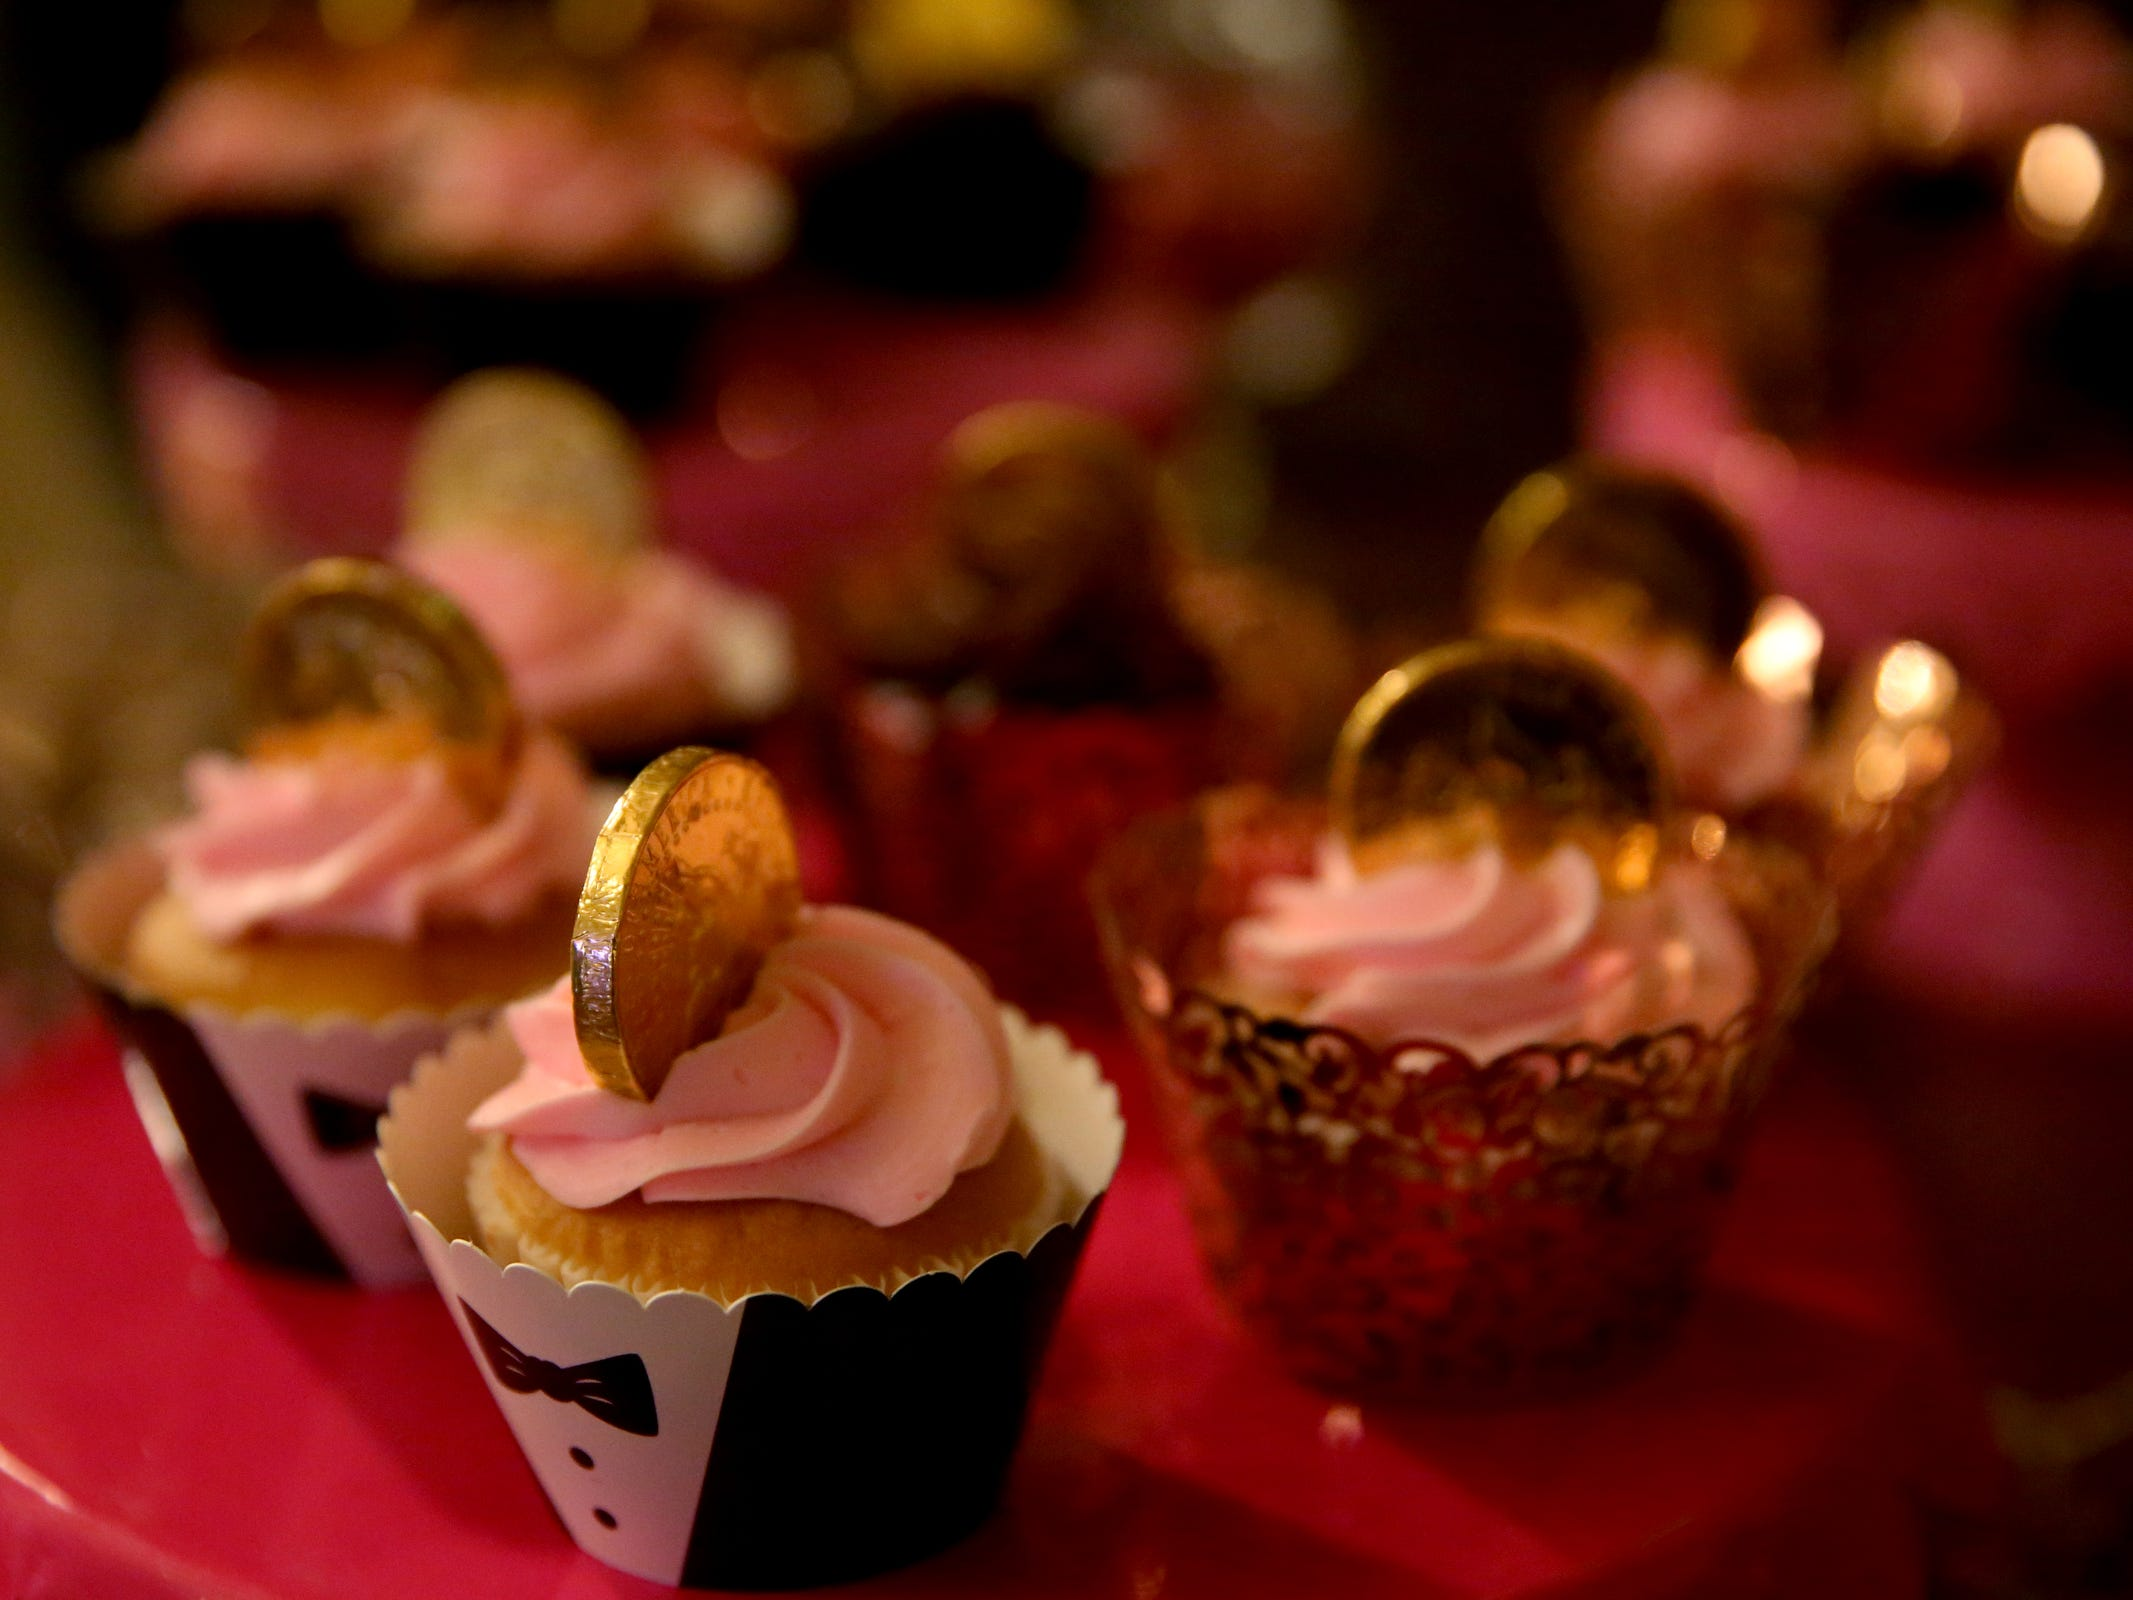 Cupcakes available during the South Salem High School prom at Zenith Vineyard in West Salem on April 13, 2019.